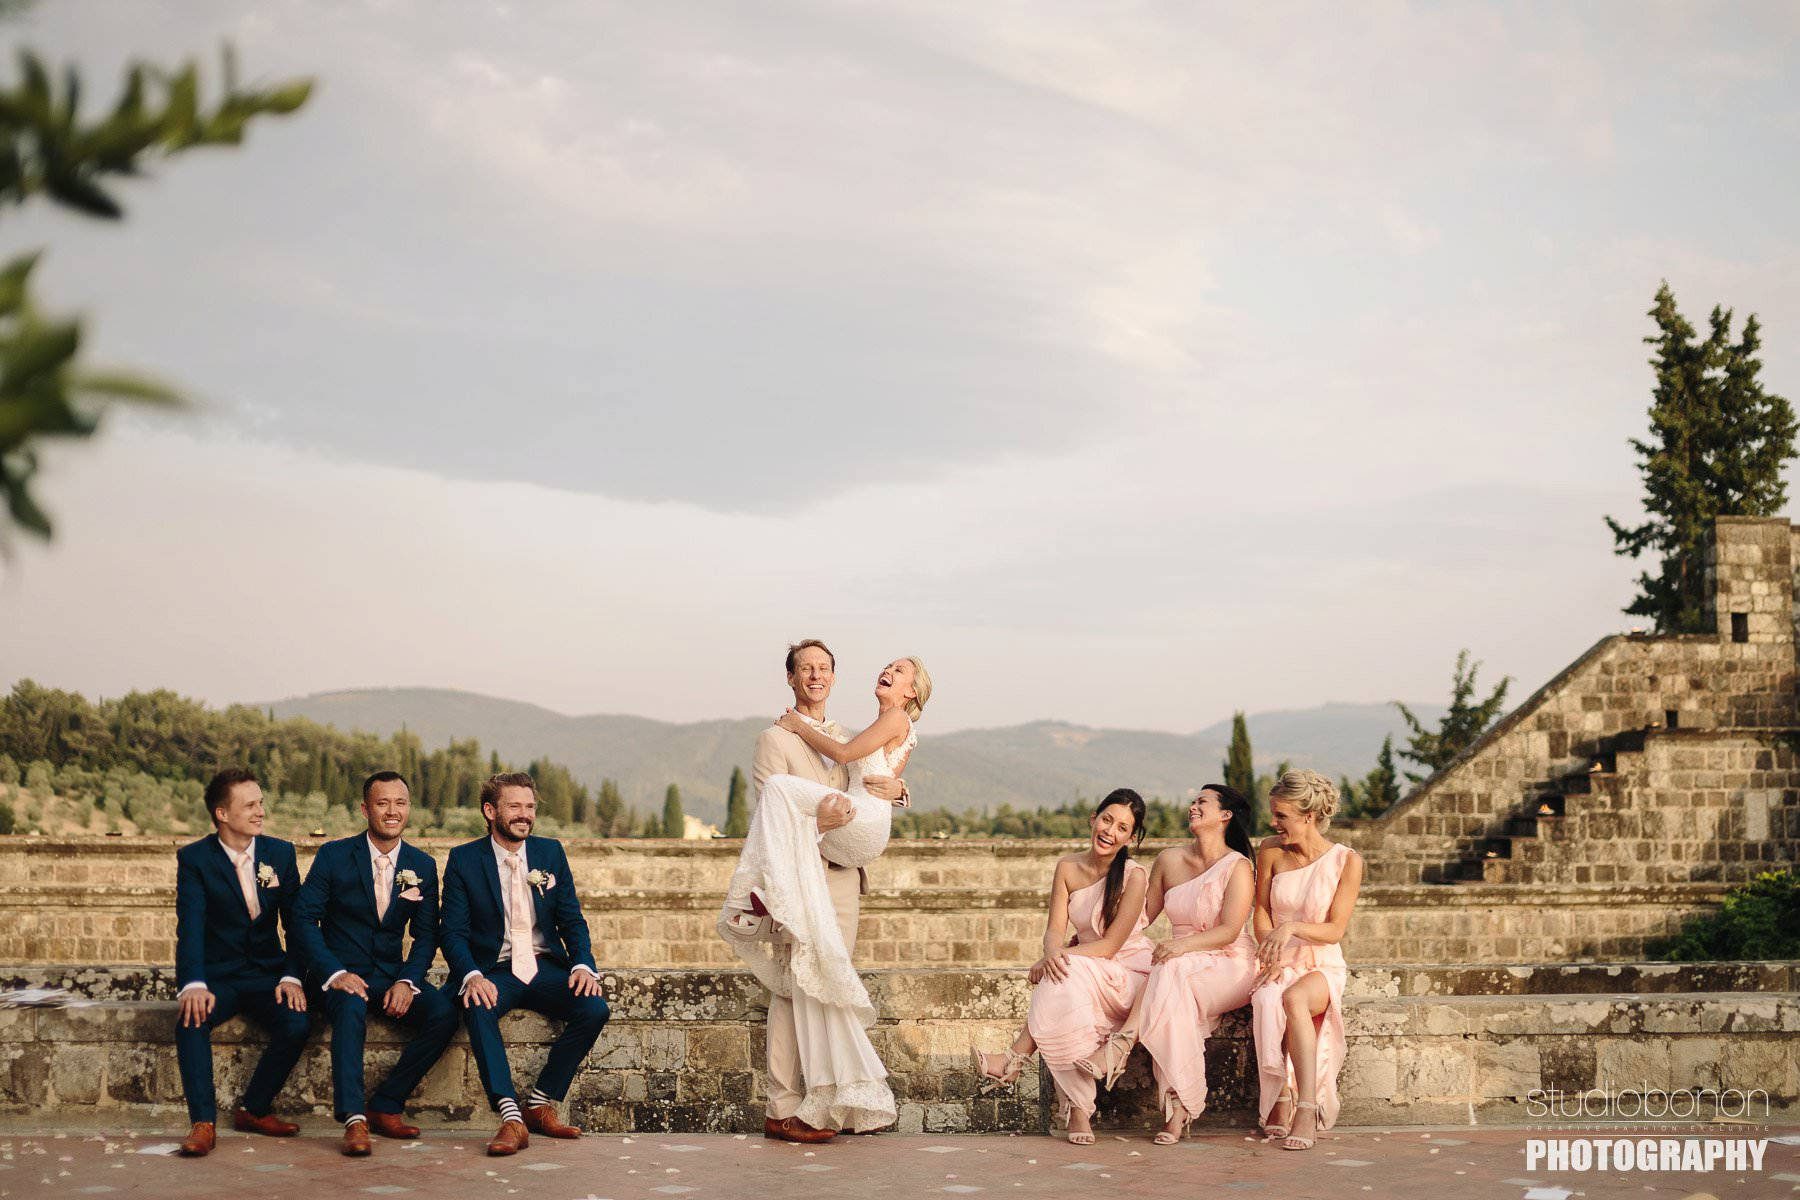 Lovely bridal party photo at Vincigliata castle into Florence countryside